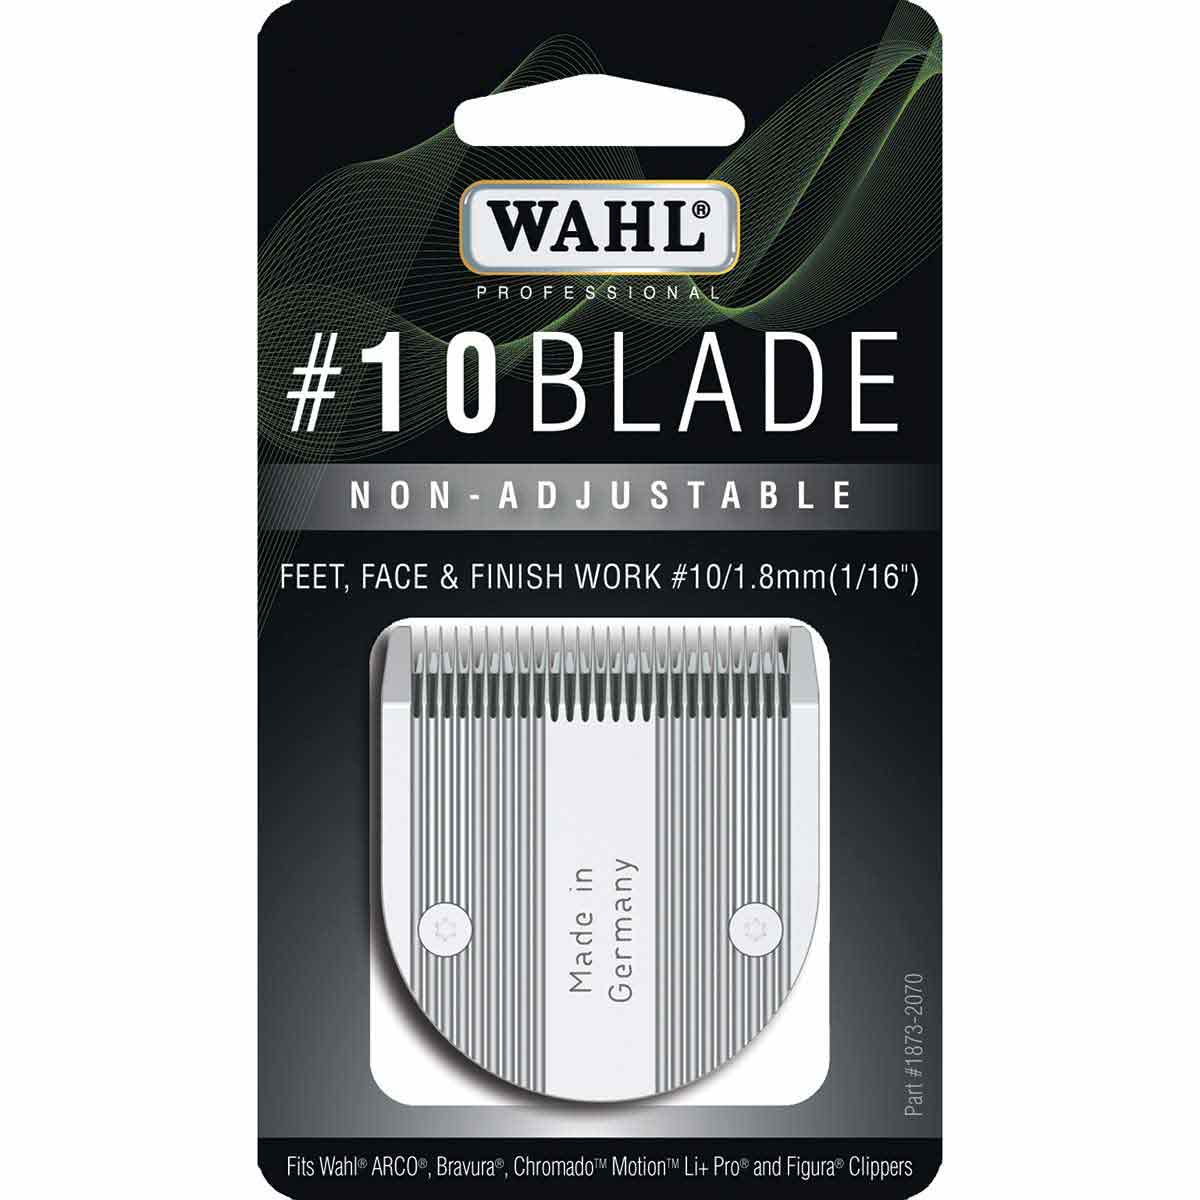 Packaging for Wahl #10 Non-Adjustable 5 in 1 Blade